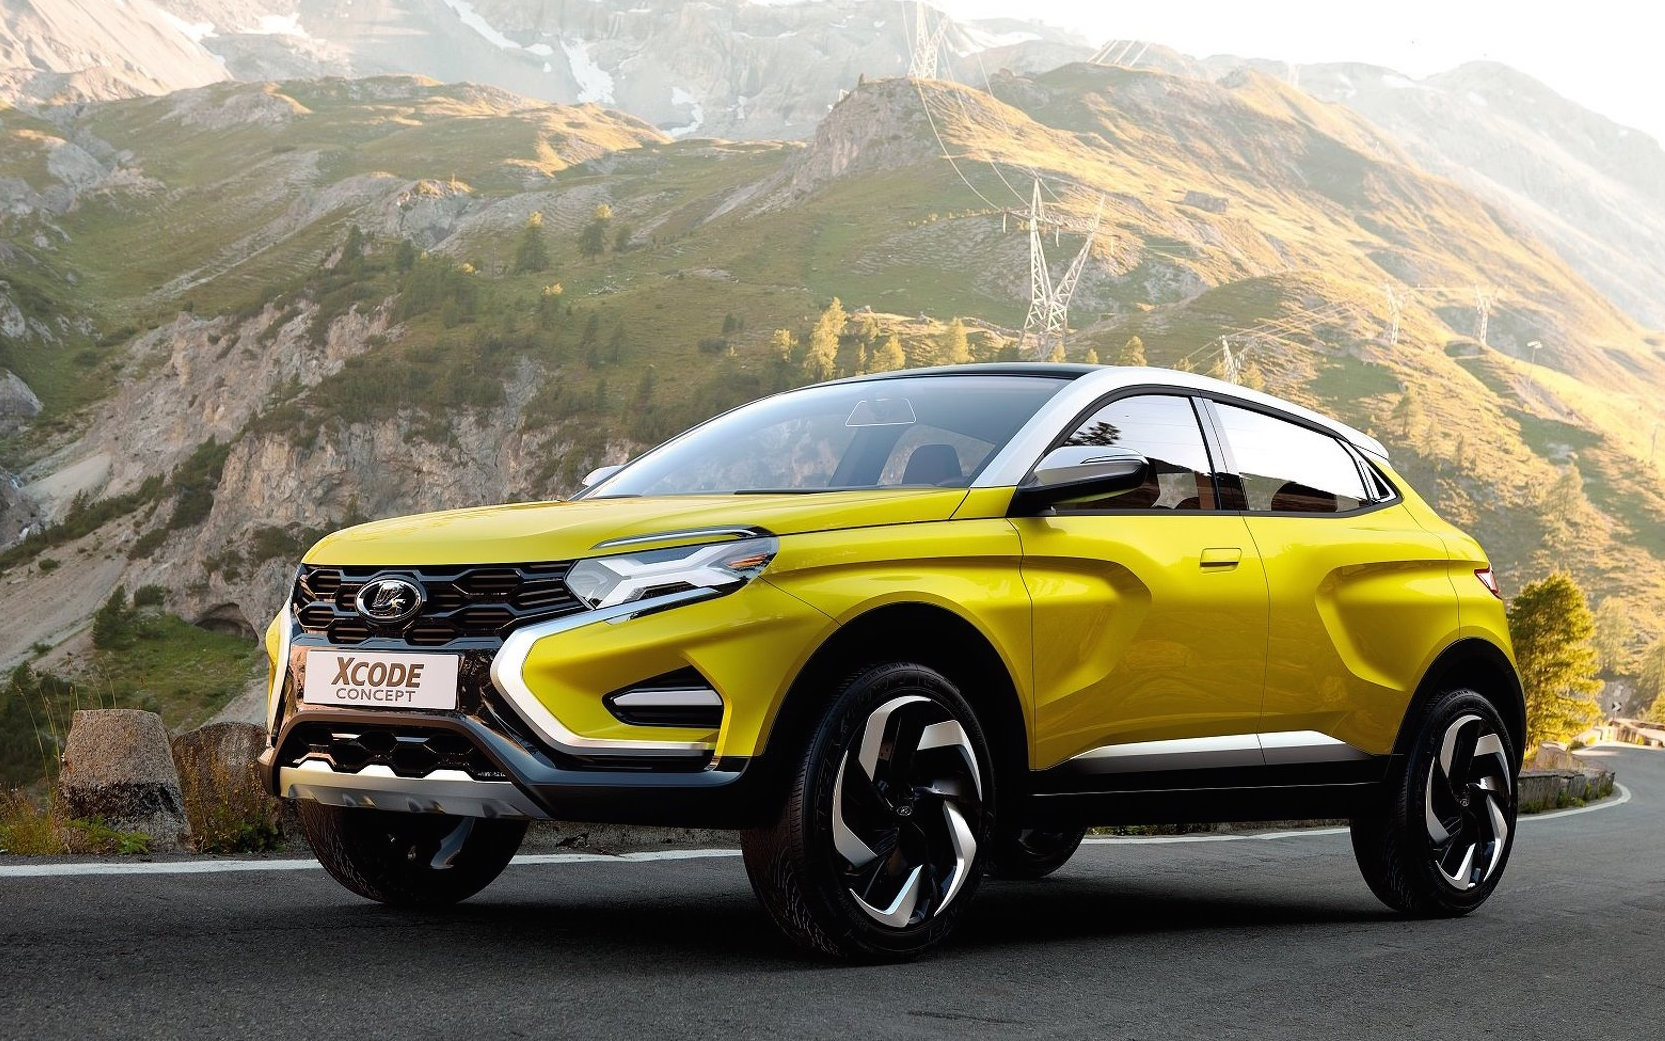 Lada Xcode Concept Revealed Could Spawn Funky Suv